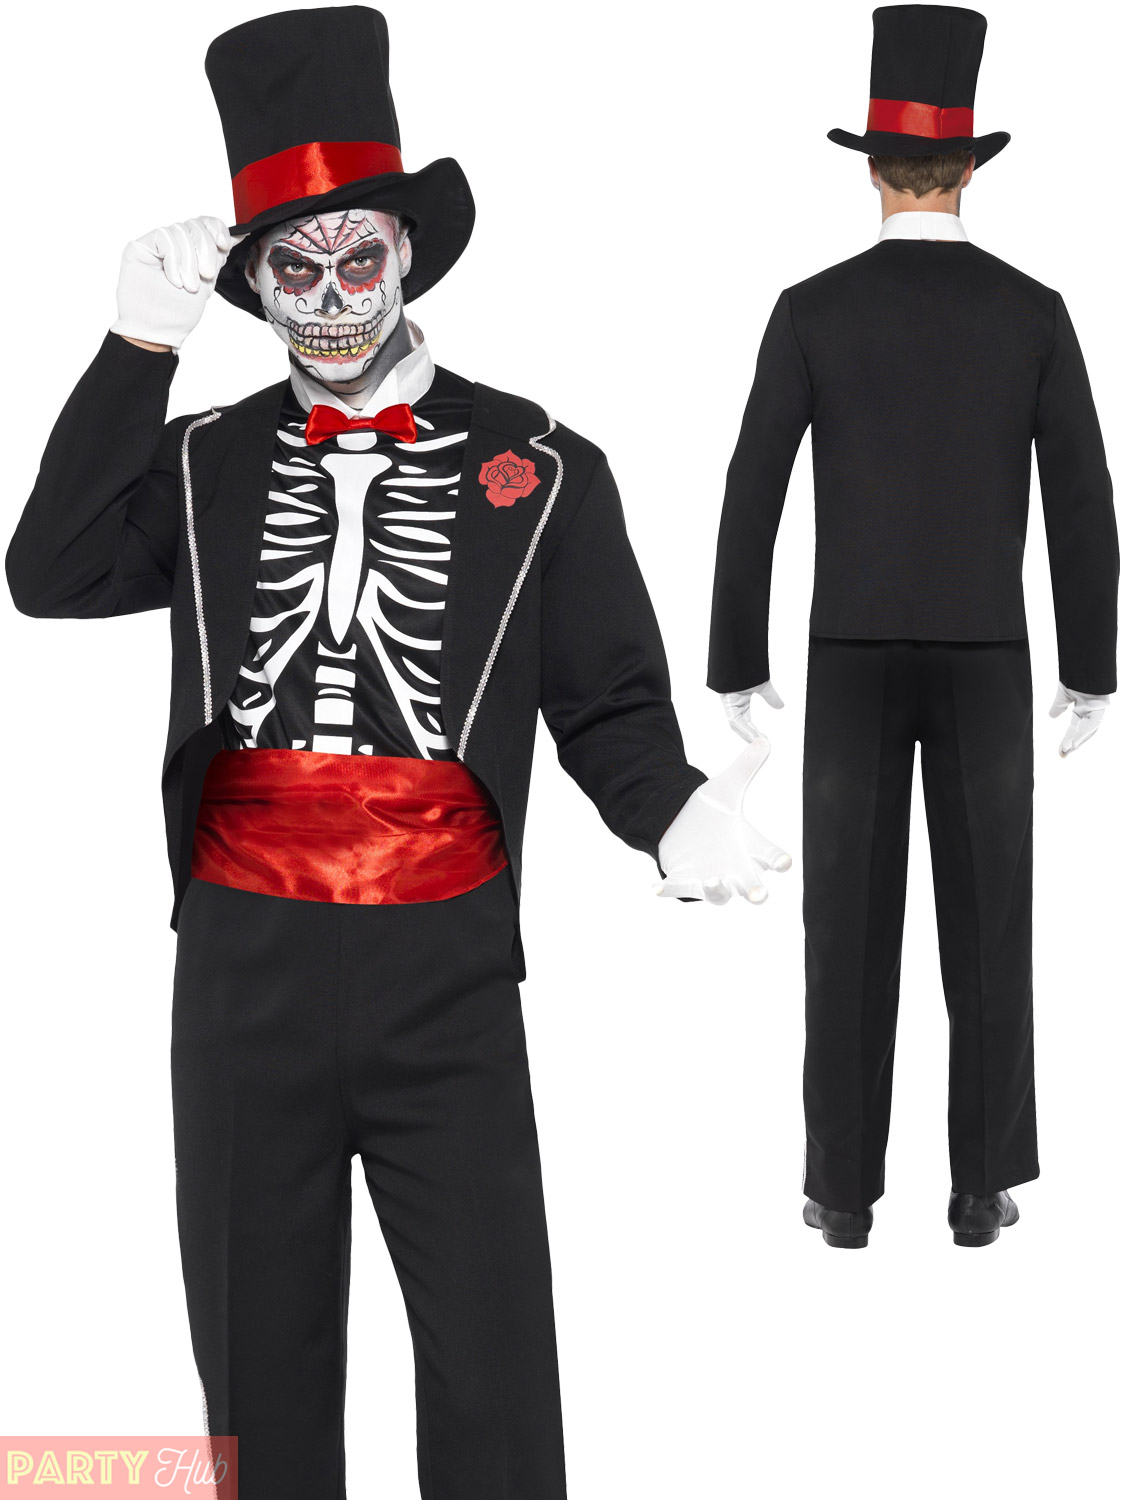 Mens Day Of The Dead Costume James Bond Skeleton Tux Suit Halloween